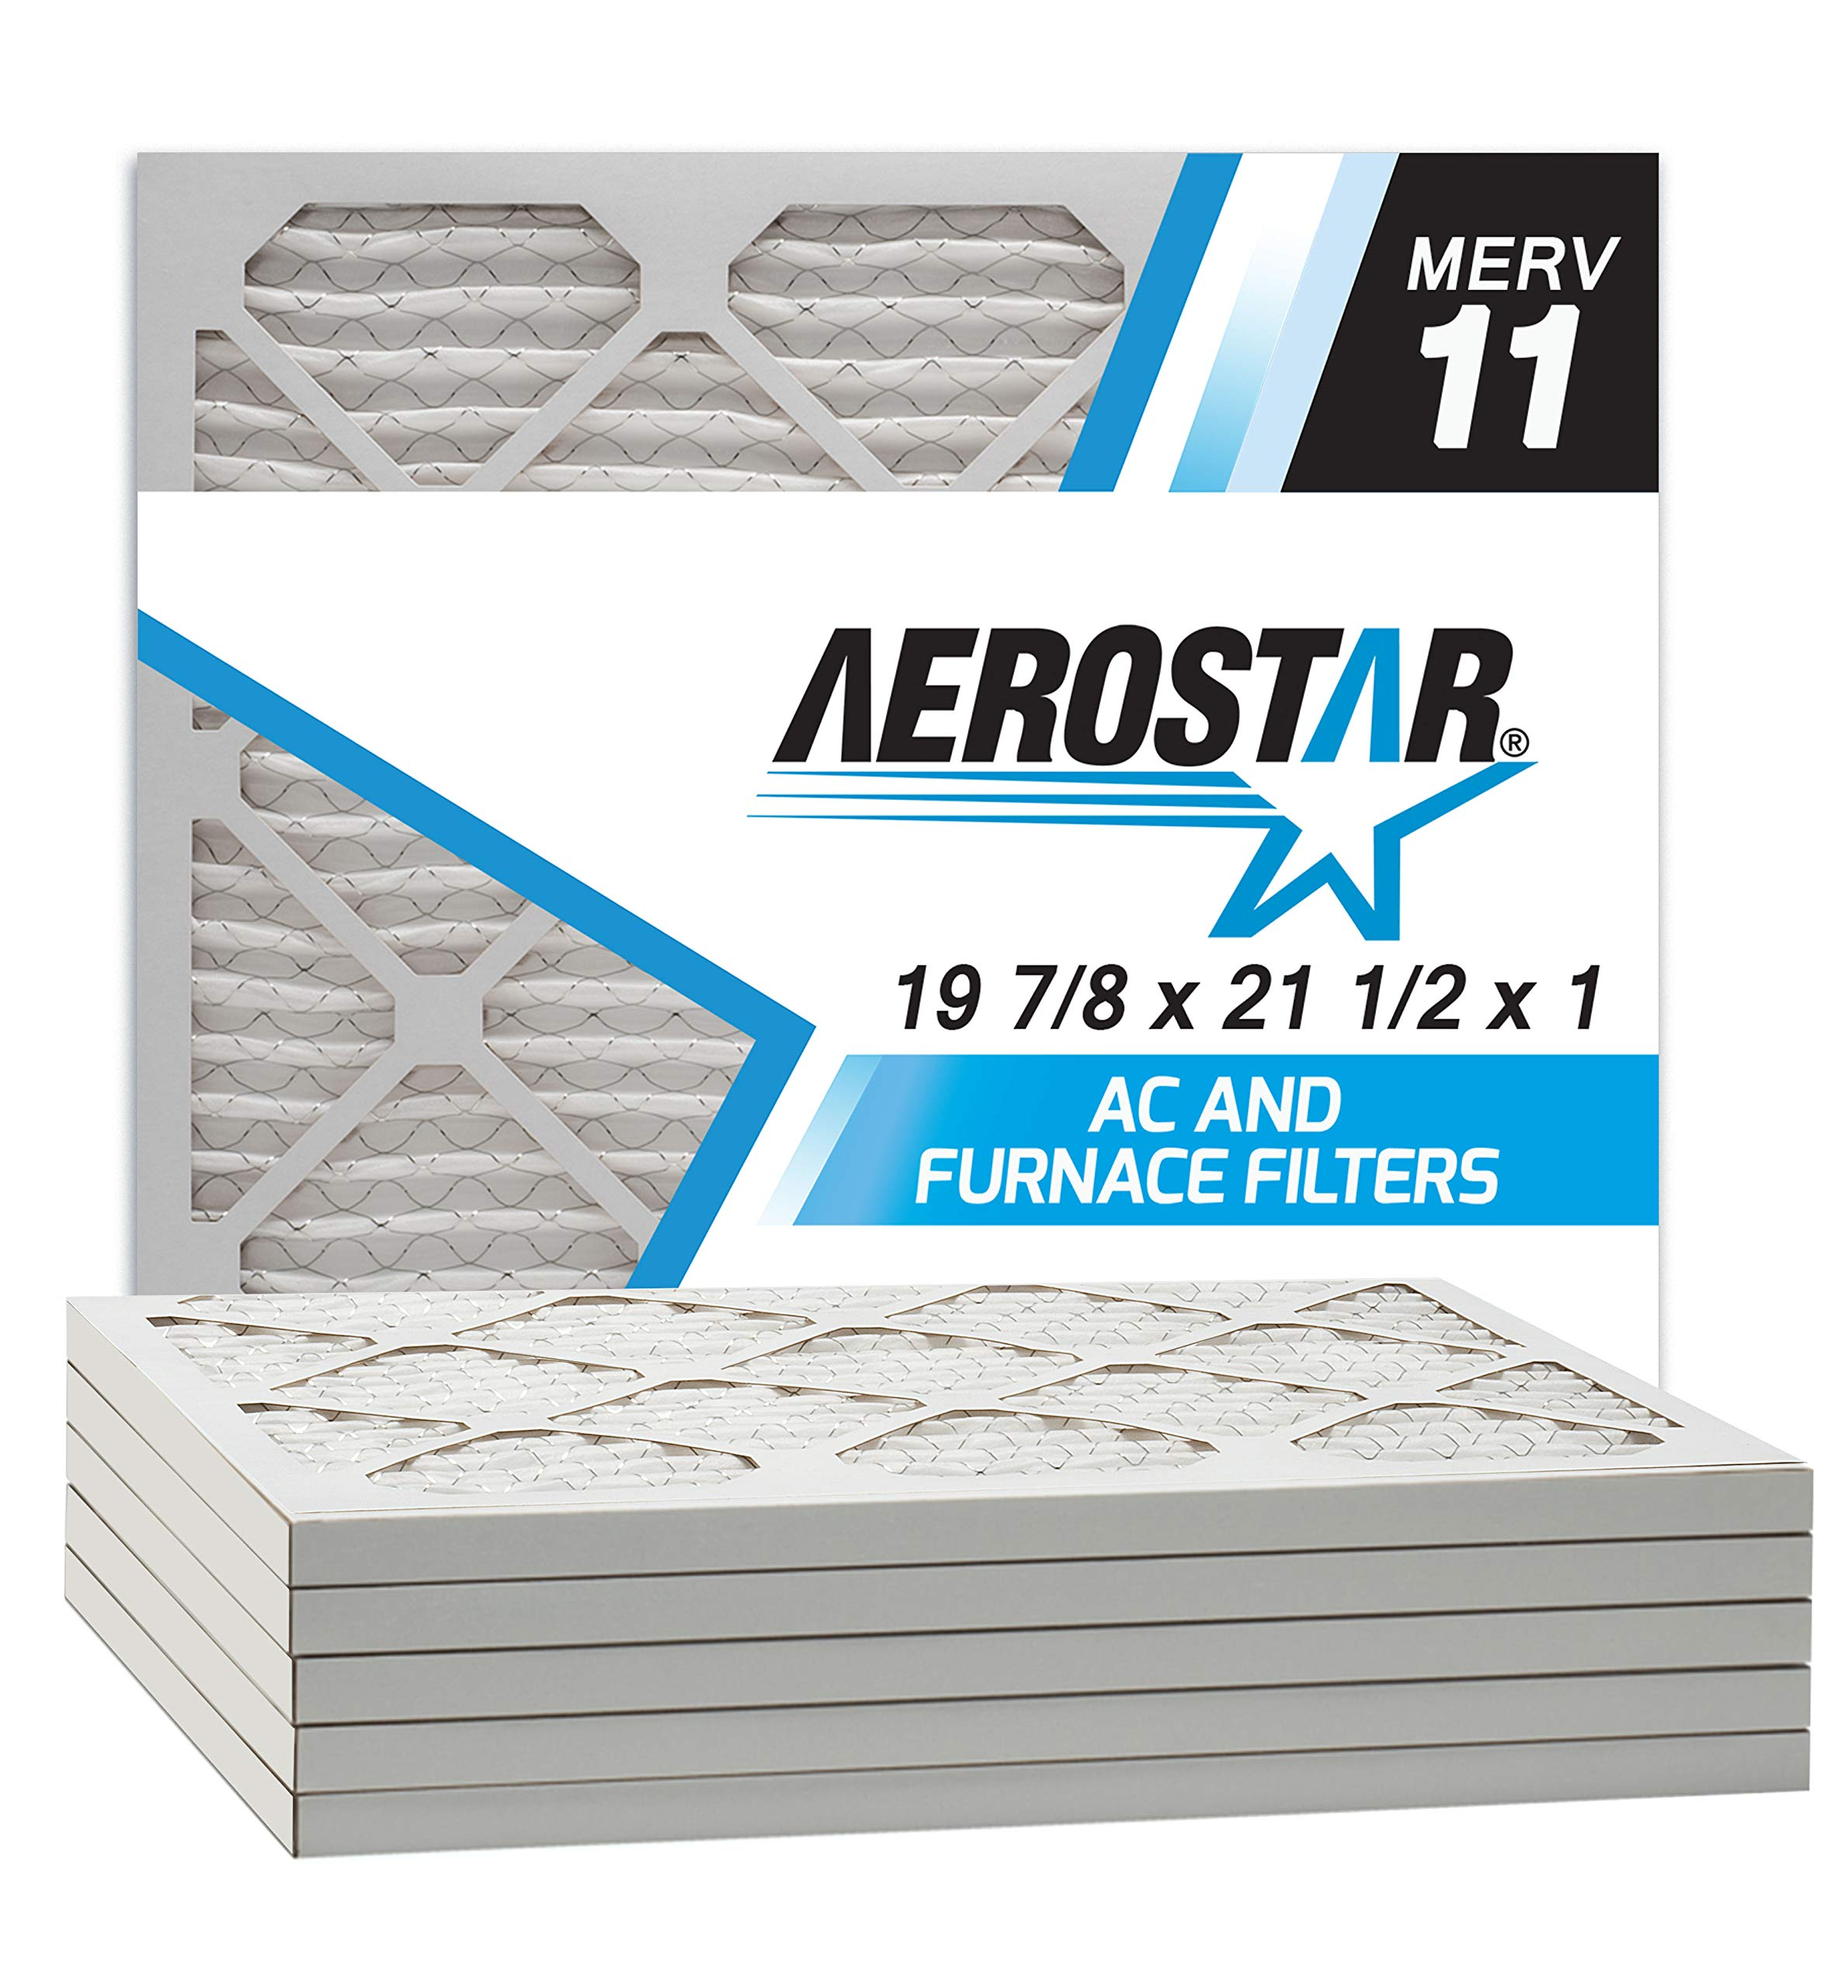 Aerostar Pleated Air Filter, MERV 11, 19 7/8 x 21 1/2 x 1, Pack of 6, Made in the USA